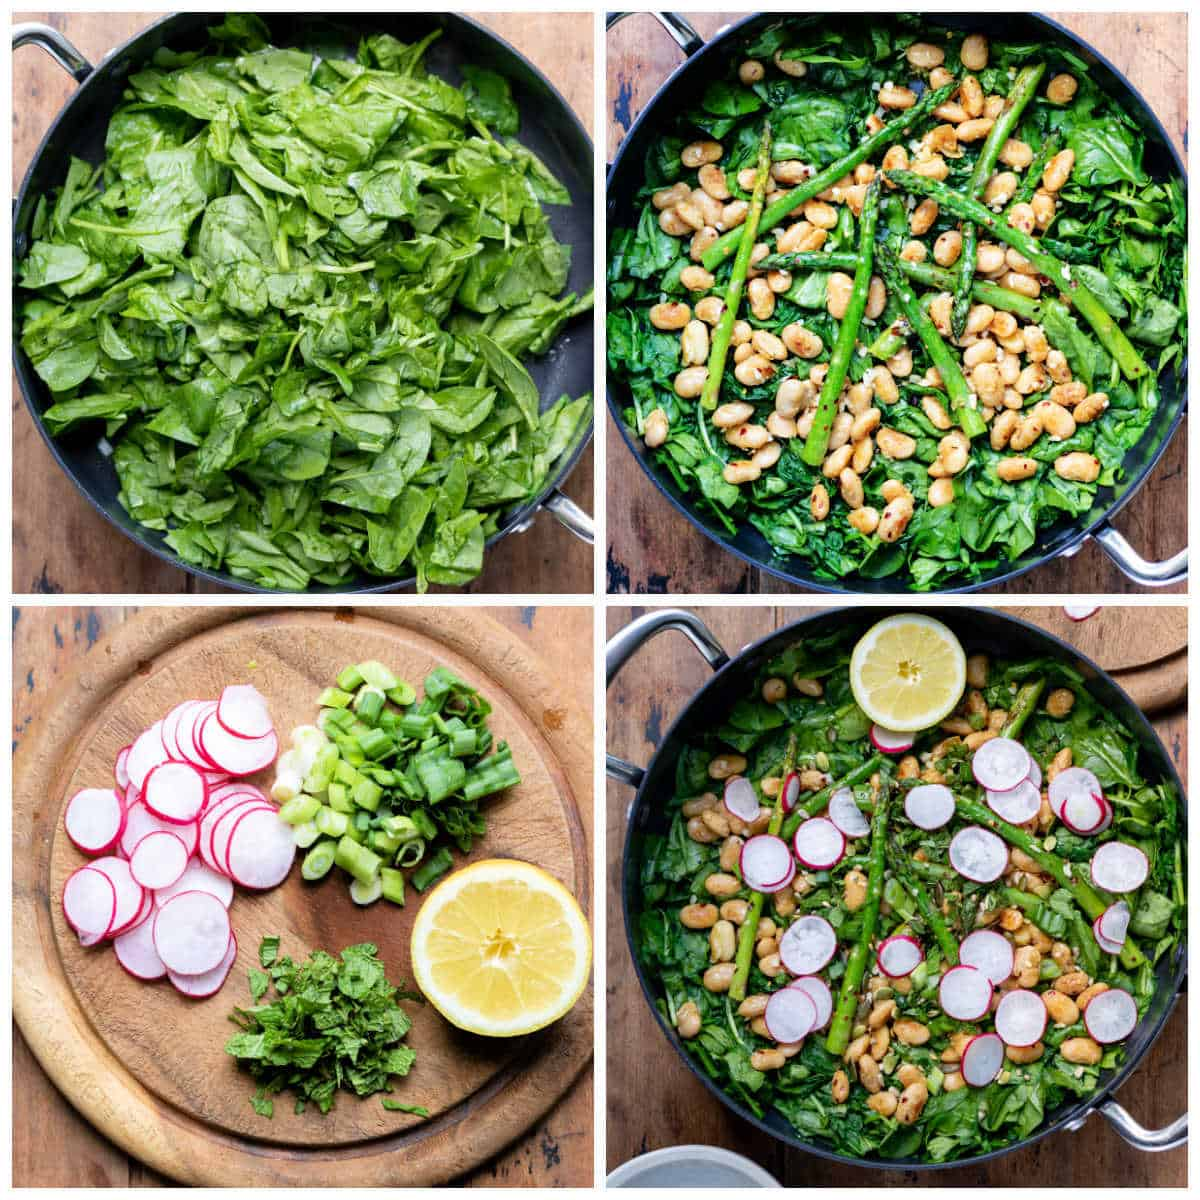 Collage of making salad pictures.